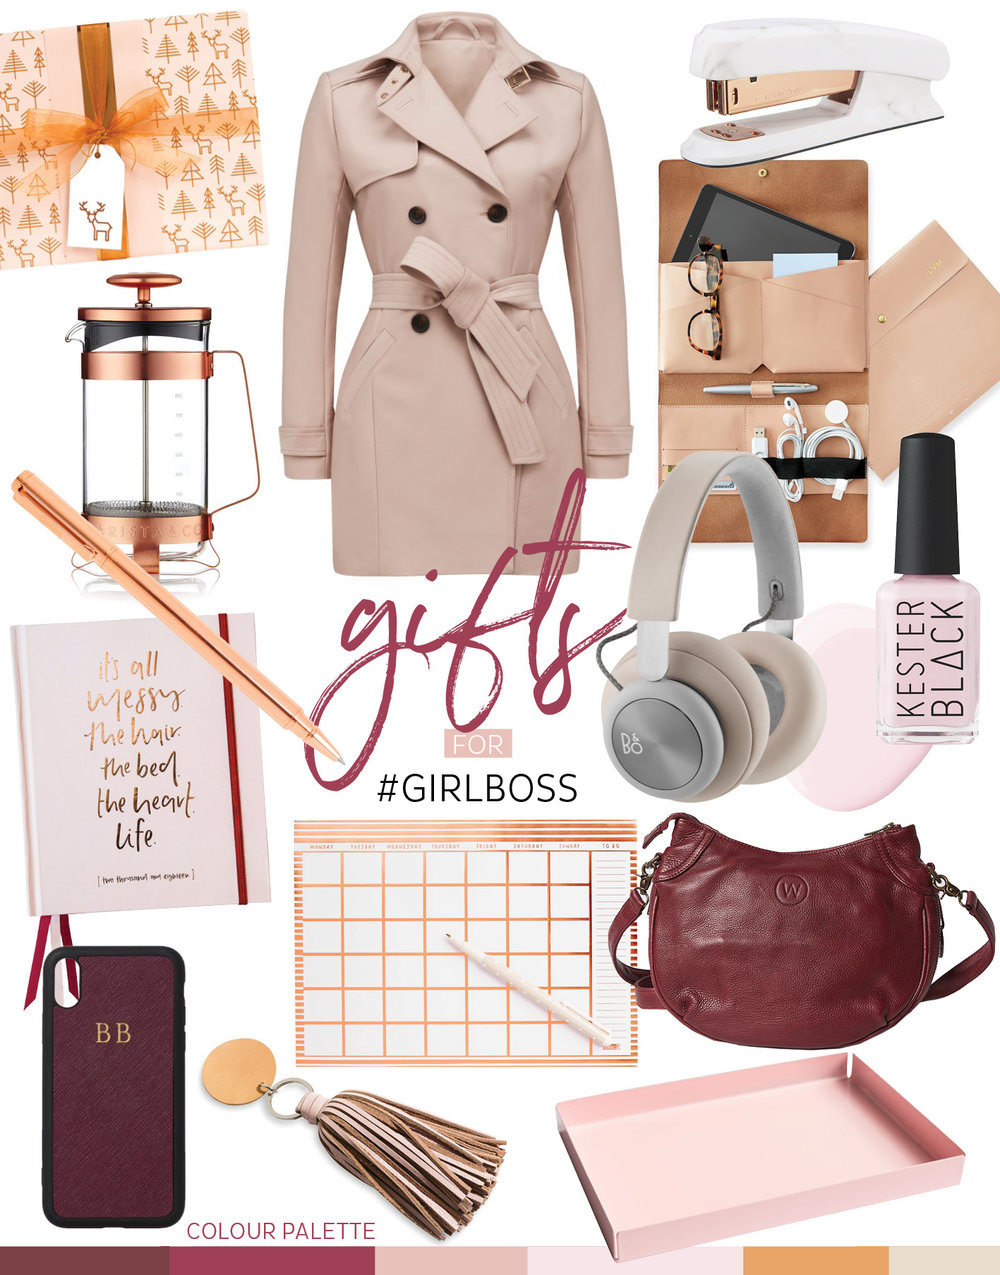 adore_home_magazine_christmas-gift-guide_girlboss_entrepreneur.jpg